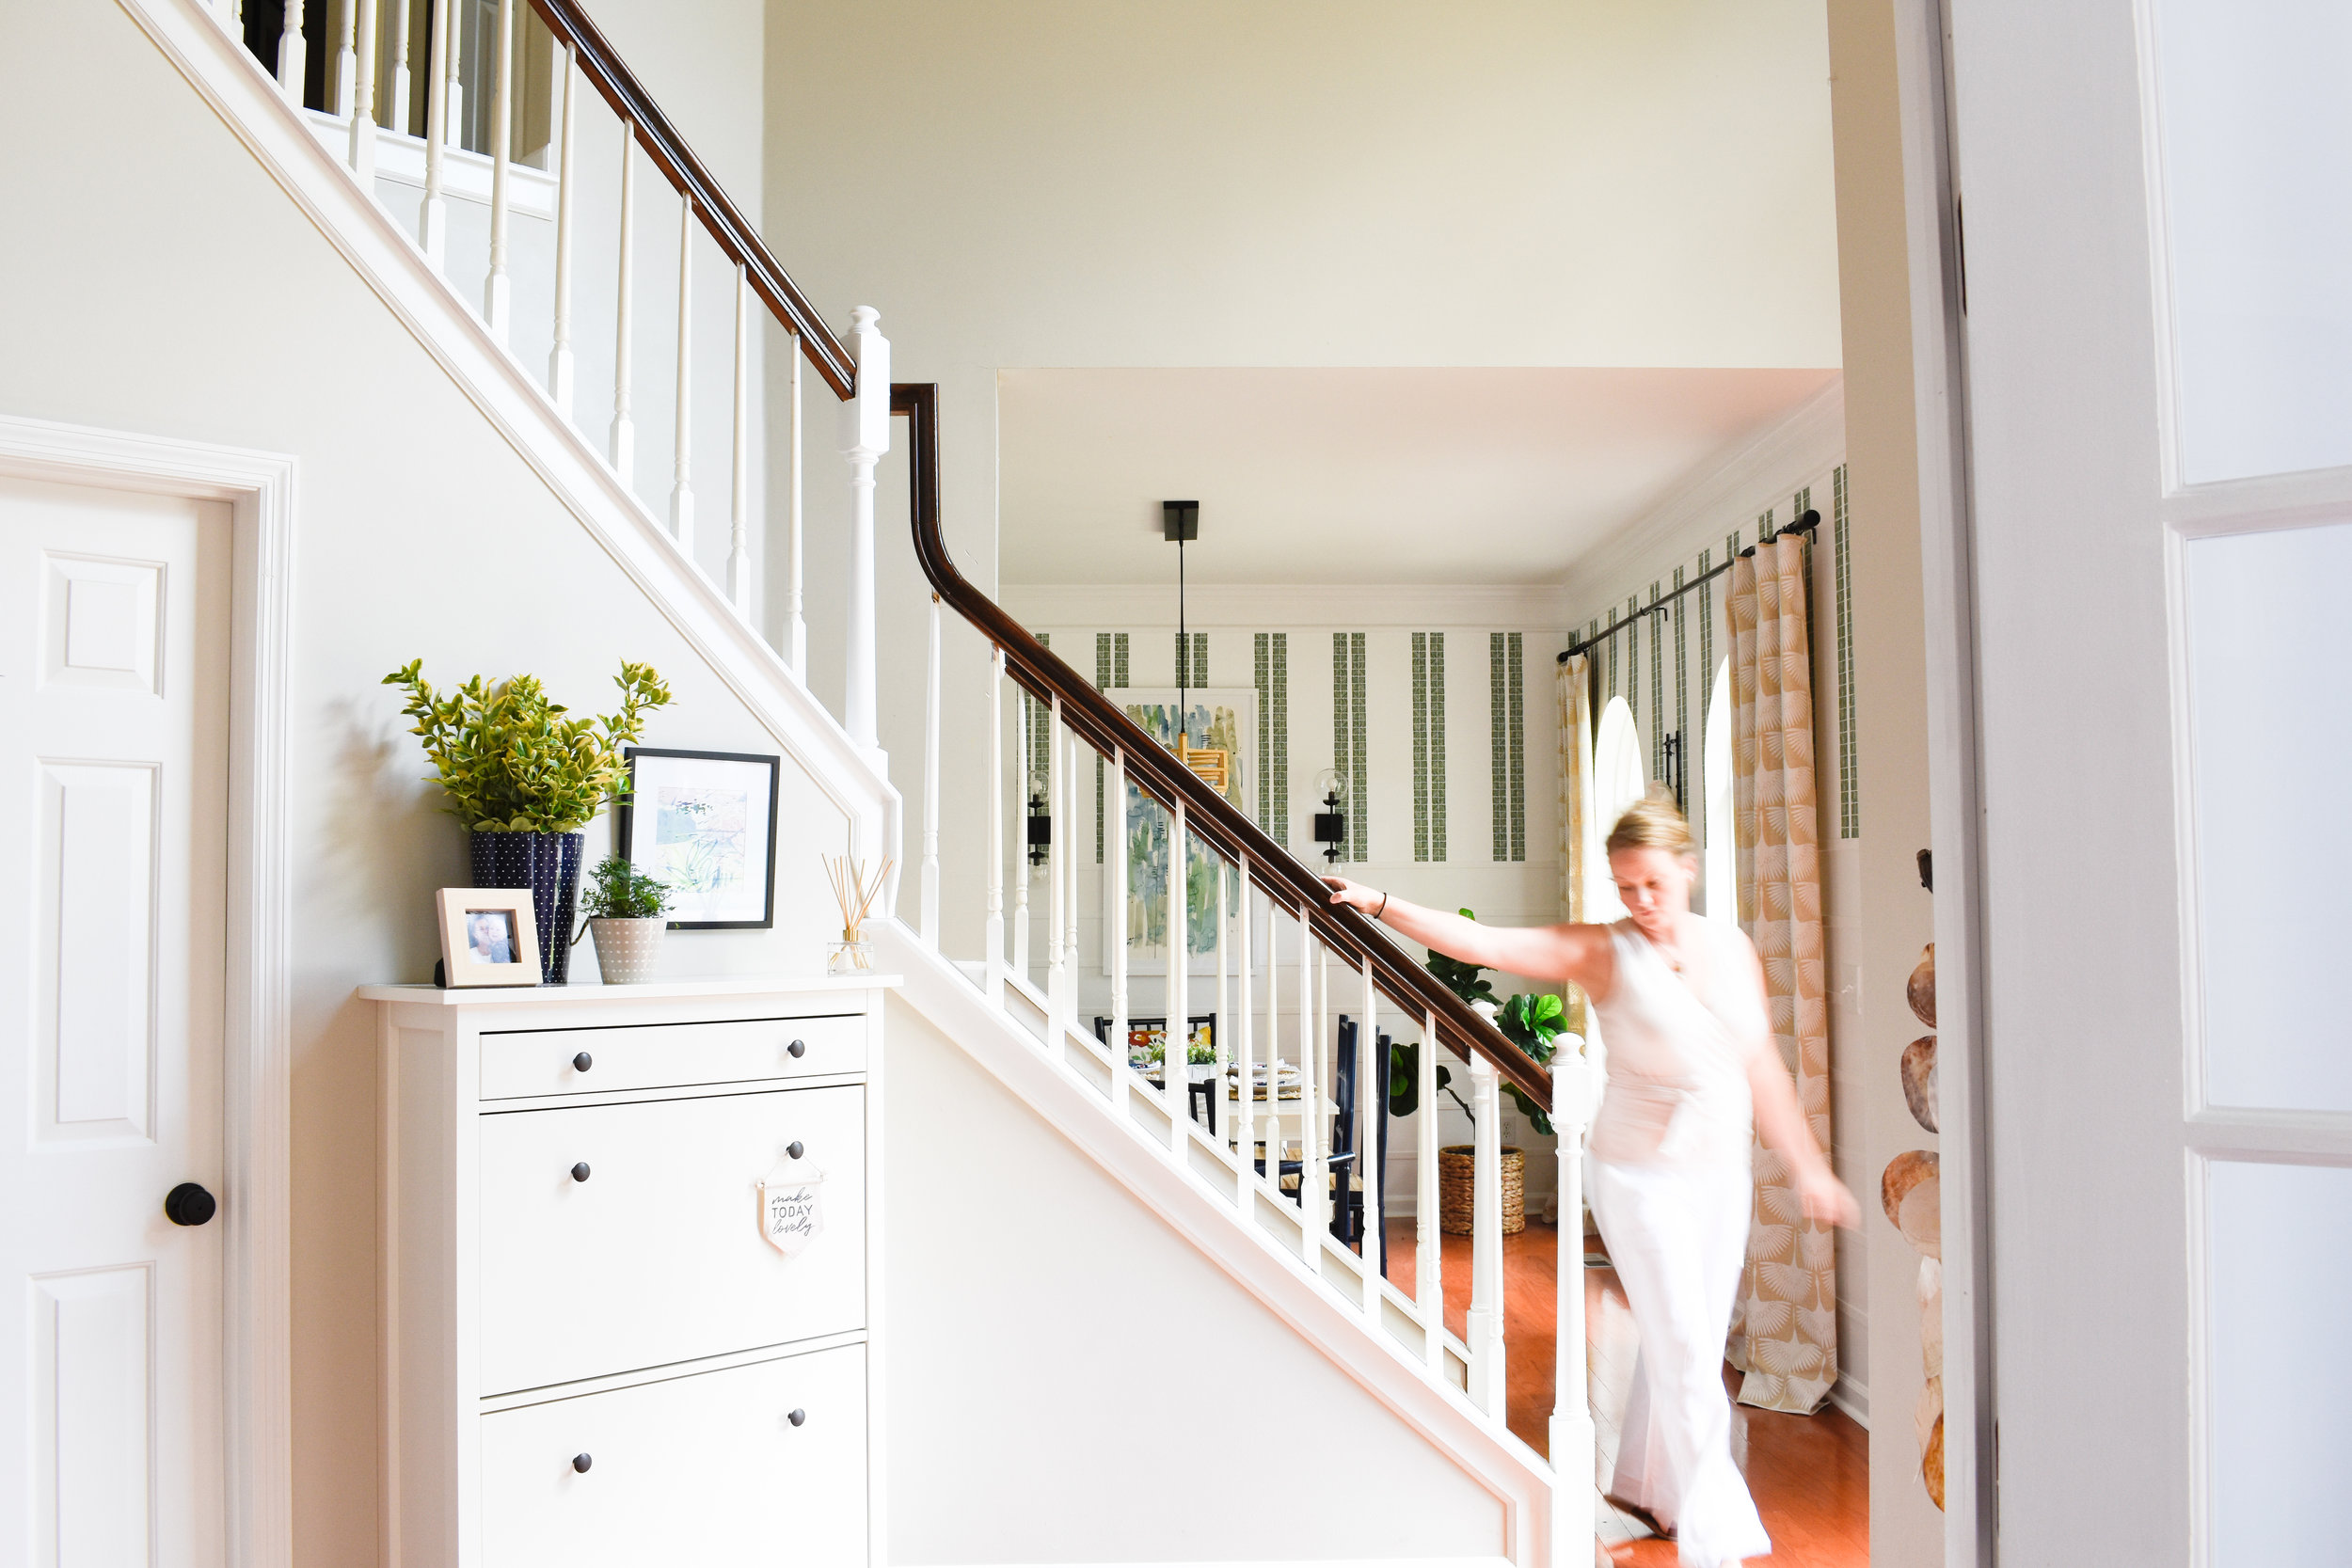 Top 5 Home Trends Real Estate Buyers Want To See In 2019 + Free Guide To Evaluating Your Market To  Know Where To Spend #homestaging #flippinghomes